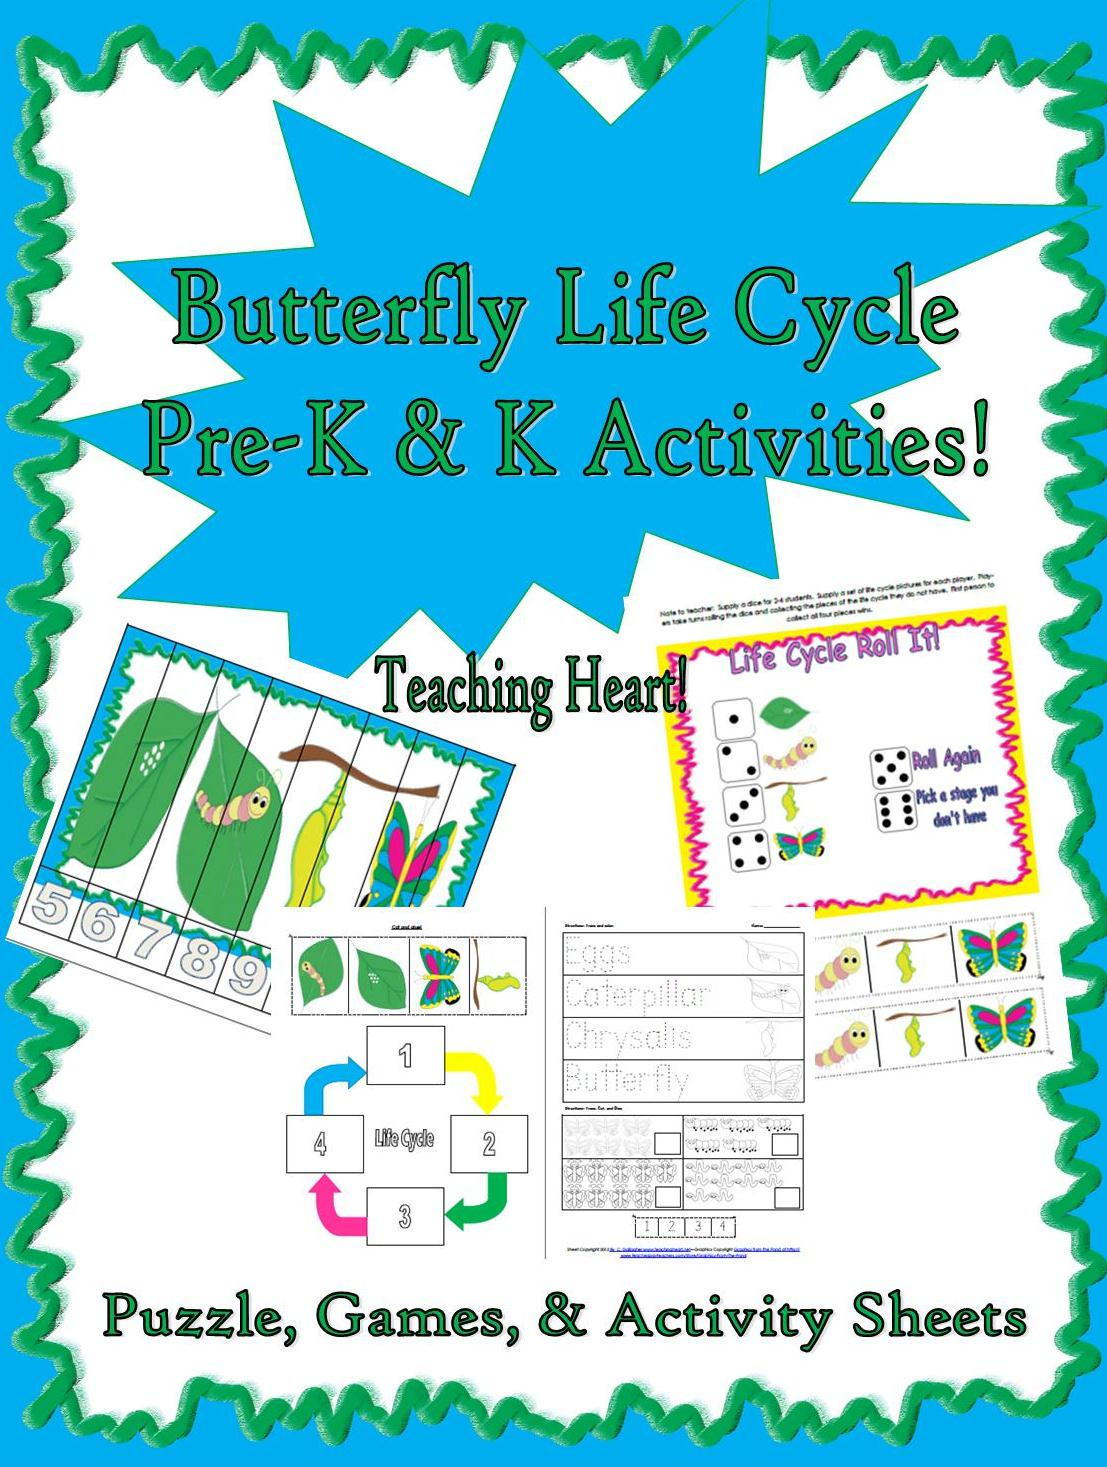 The Very Hungry Caterpillar Unit (K-3) Lessons, Links, printables ...